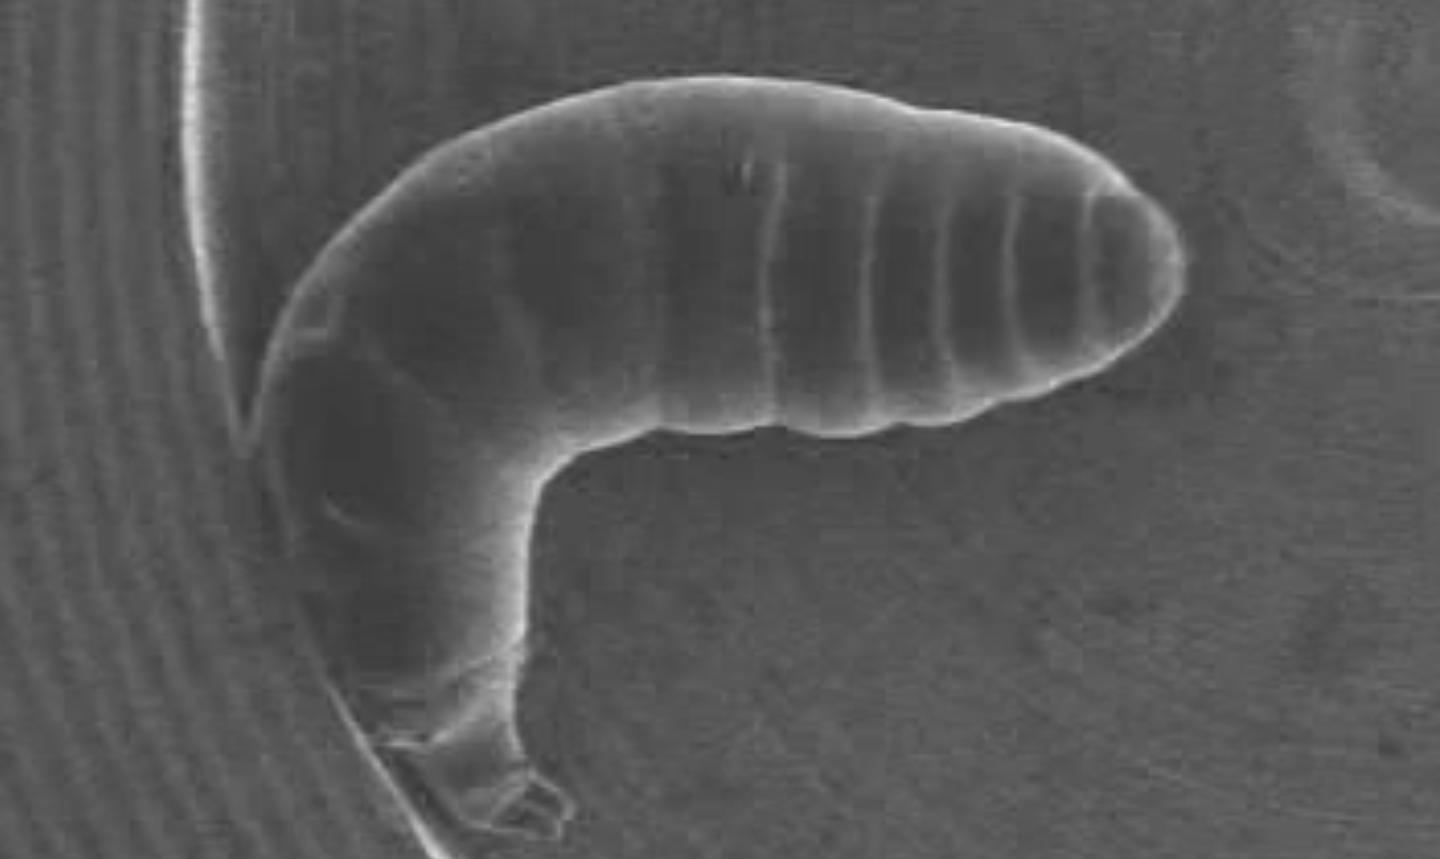 The movements of a fruit fly larva were observed under scanning electron microscope (Image: PNAS)